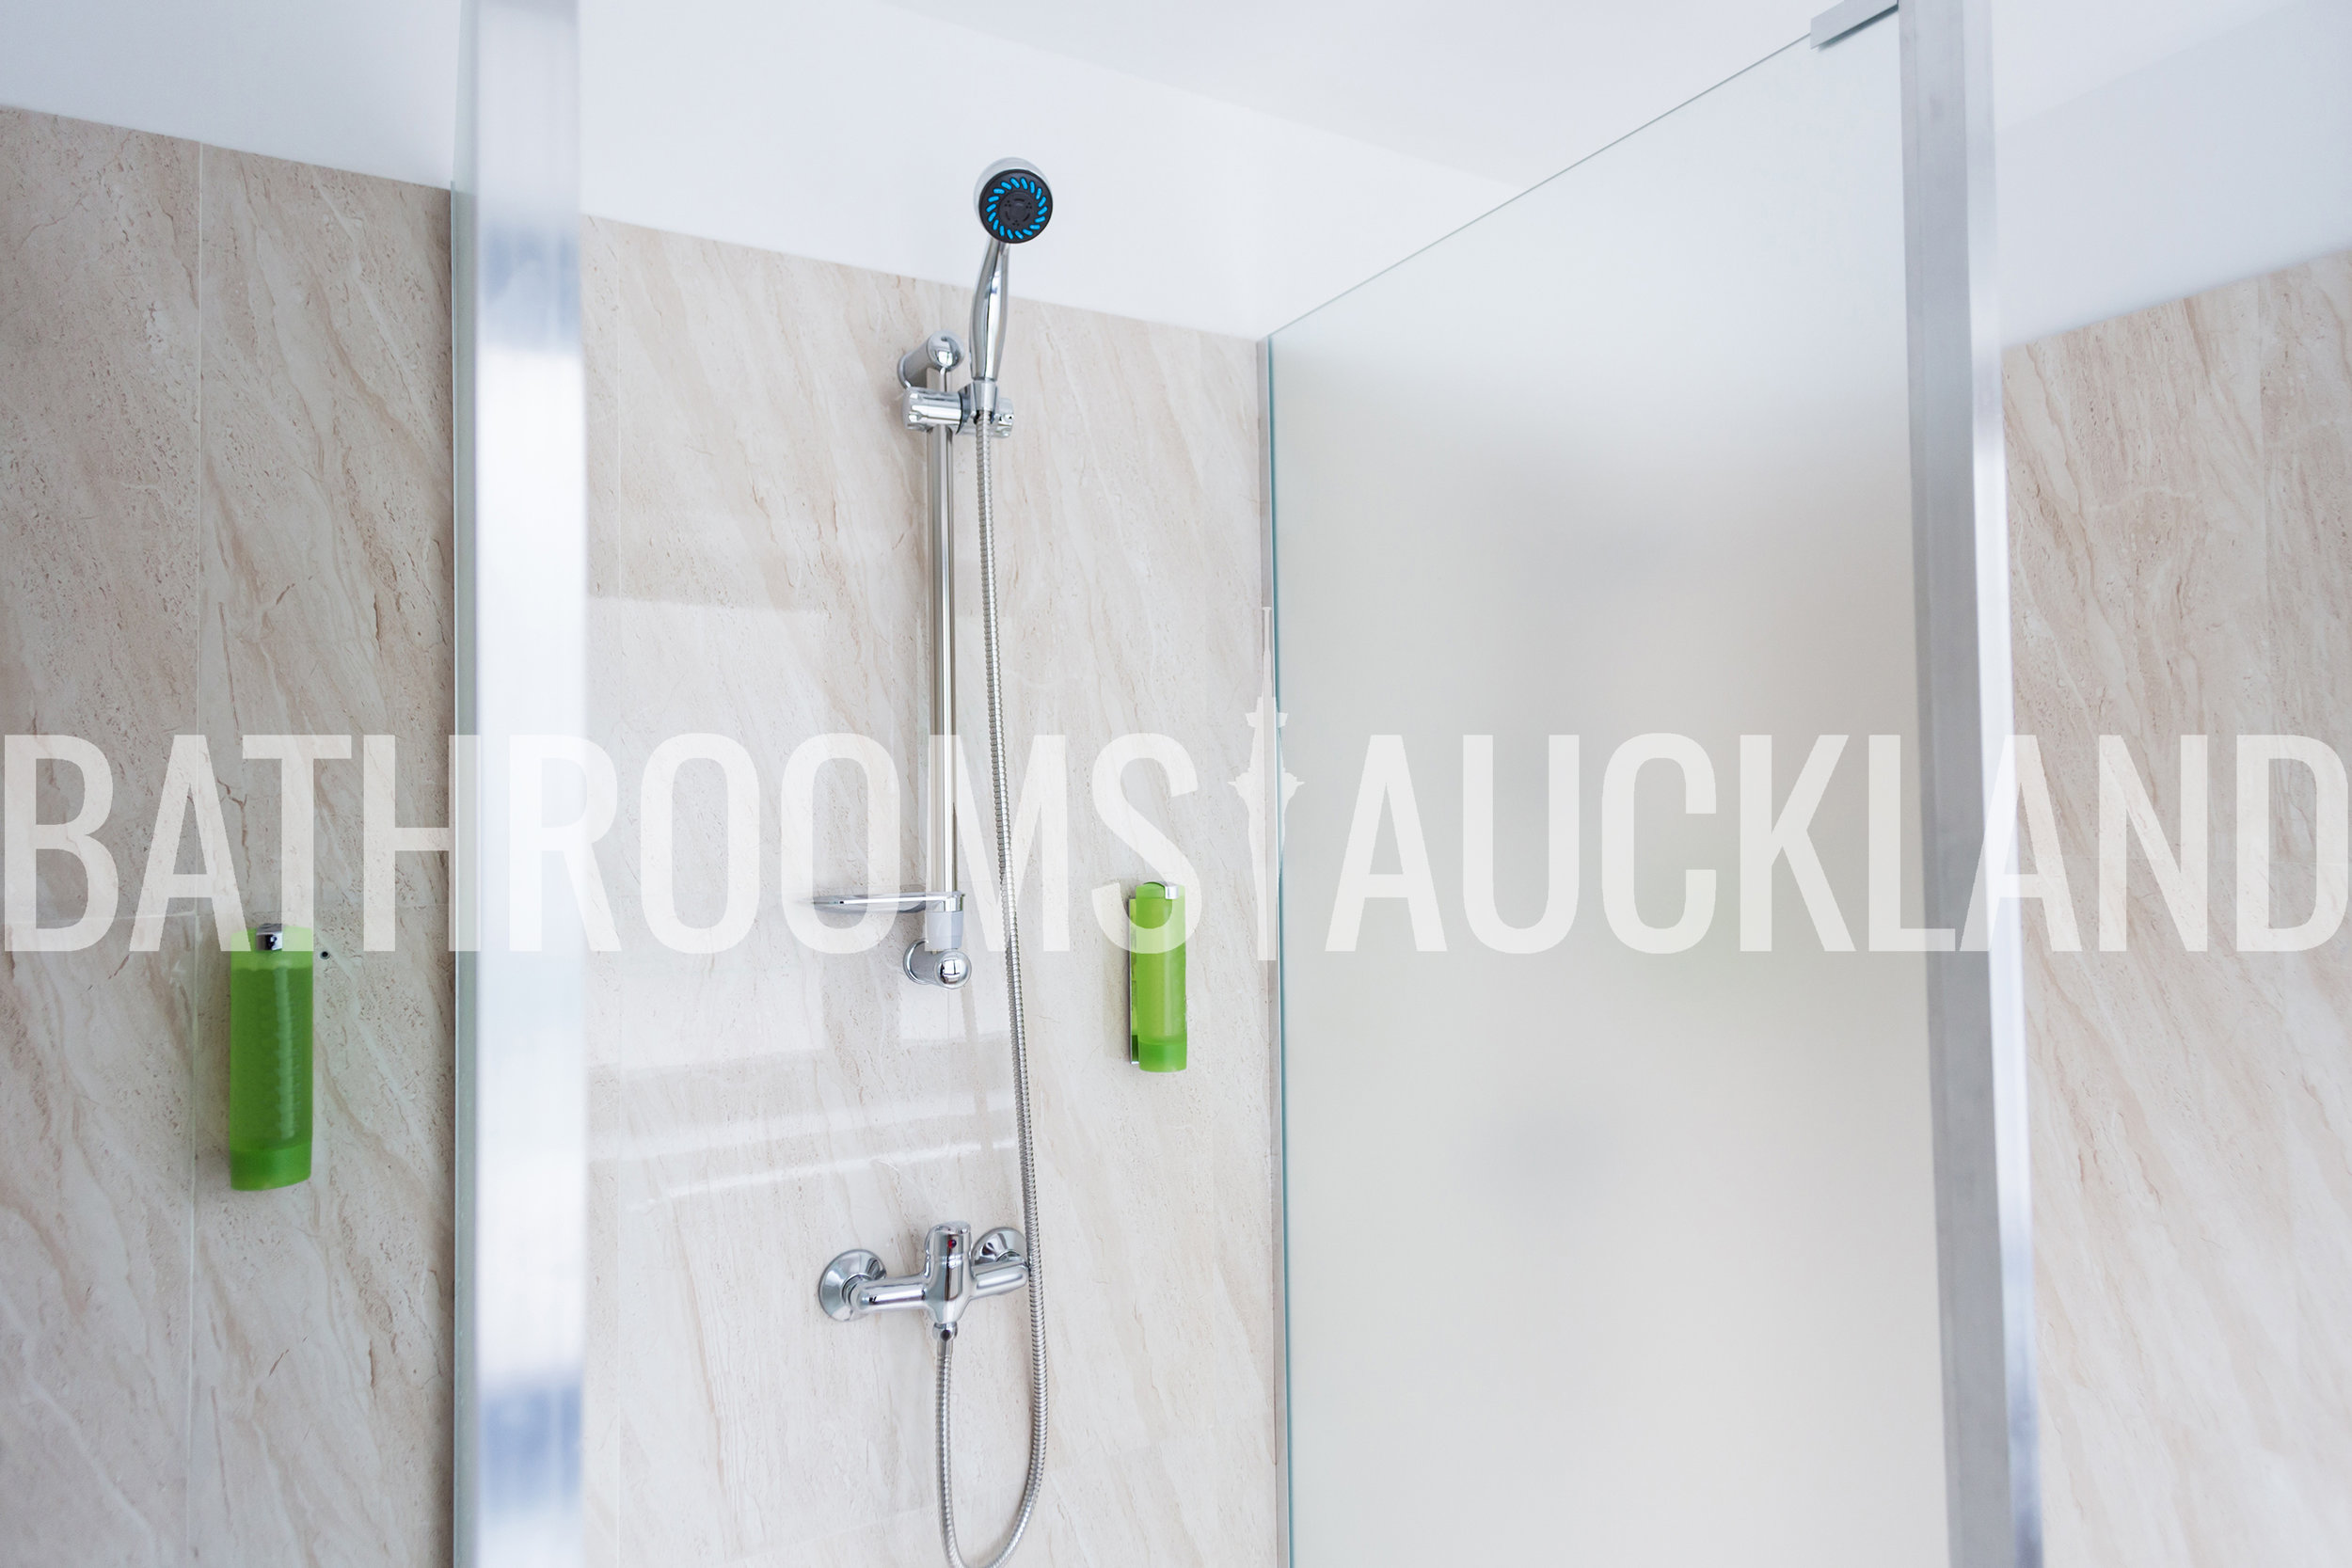 Bathrooms Auckland Renovation_Bathrooms In Auckland_Bathroom Renovation_Bathrooms Renovation_Bathrooms Auckland Renovation .1227.jpg